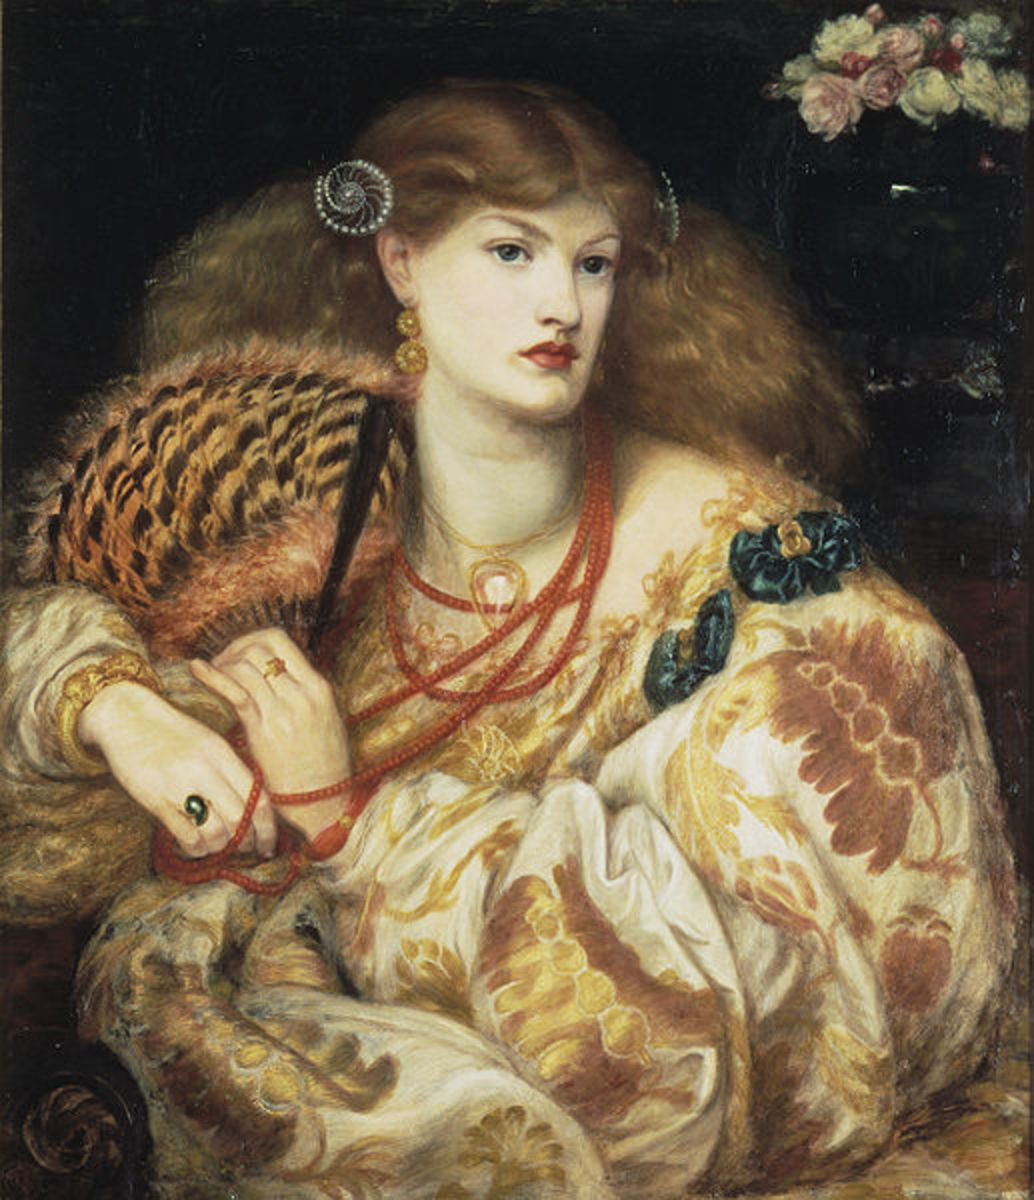 The Monna Vanna by Dante Gabriel Rossetti, 1866. Tate Gallery, London. Image courtesy of Wiki Commons.